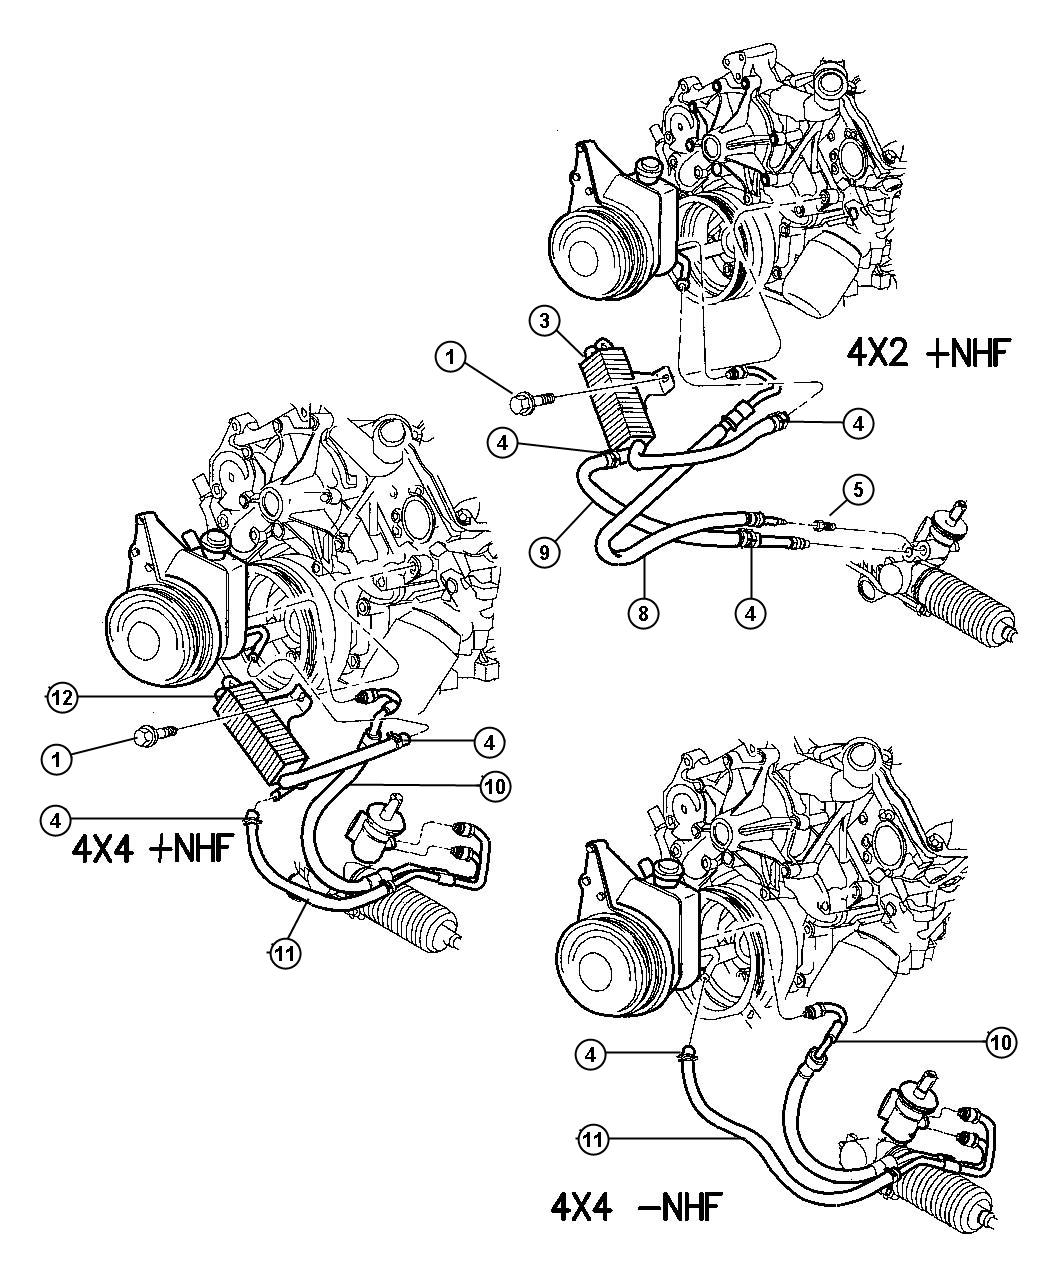 Diagram Of Windshield Wiper Washer System moreover Dodge Oil Sending Unit Location furthermore 982 in addition Dodge Ram 1500 Oxygen Sensor Location as well Wiring Diagram For A 1996 Ram 2500 V10 Automatic 4x4. on 1997 dodge dakota wiring diagram